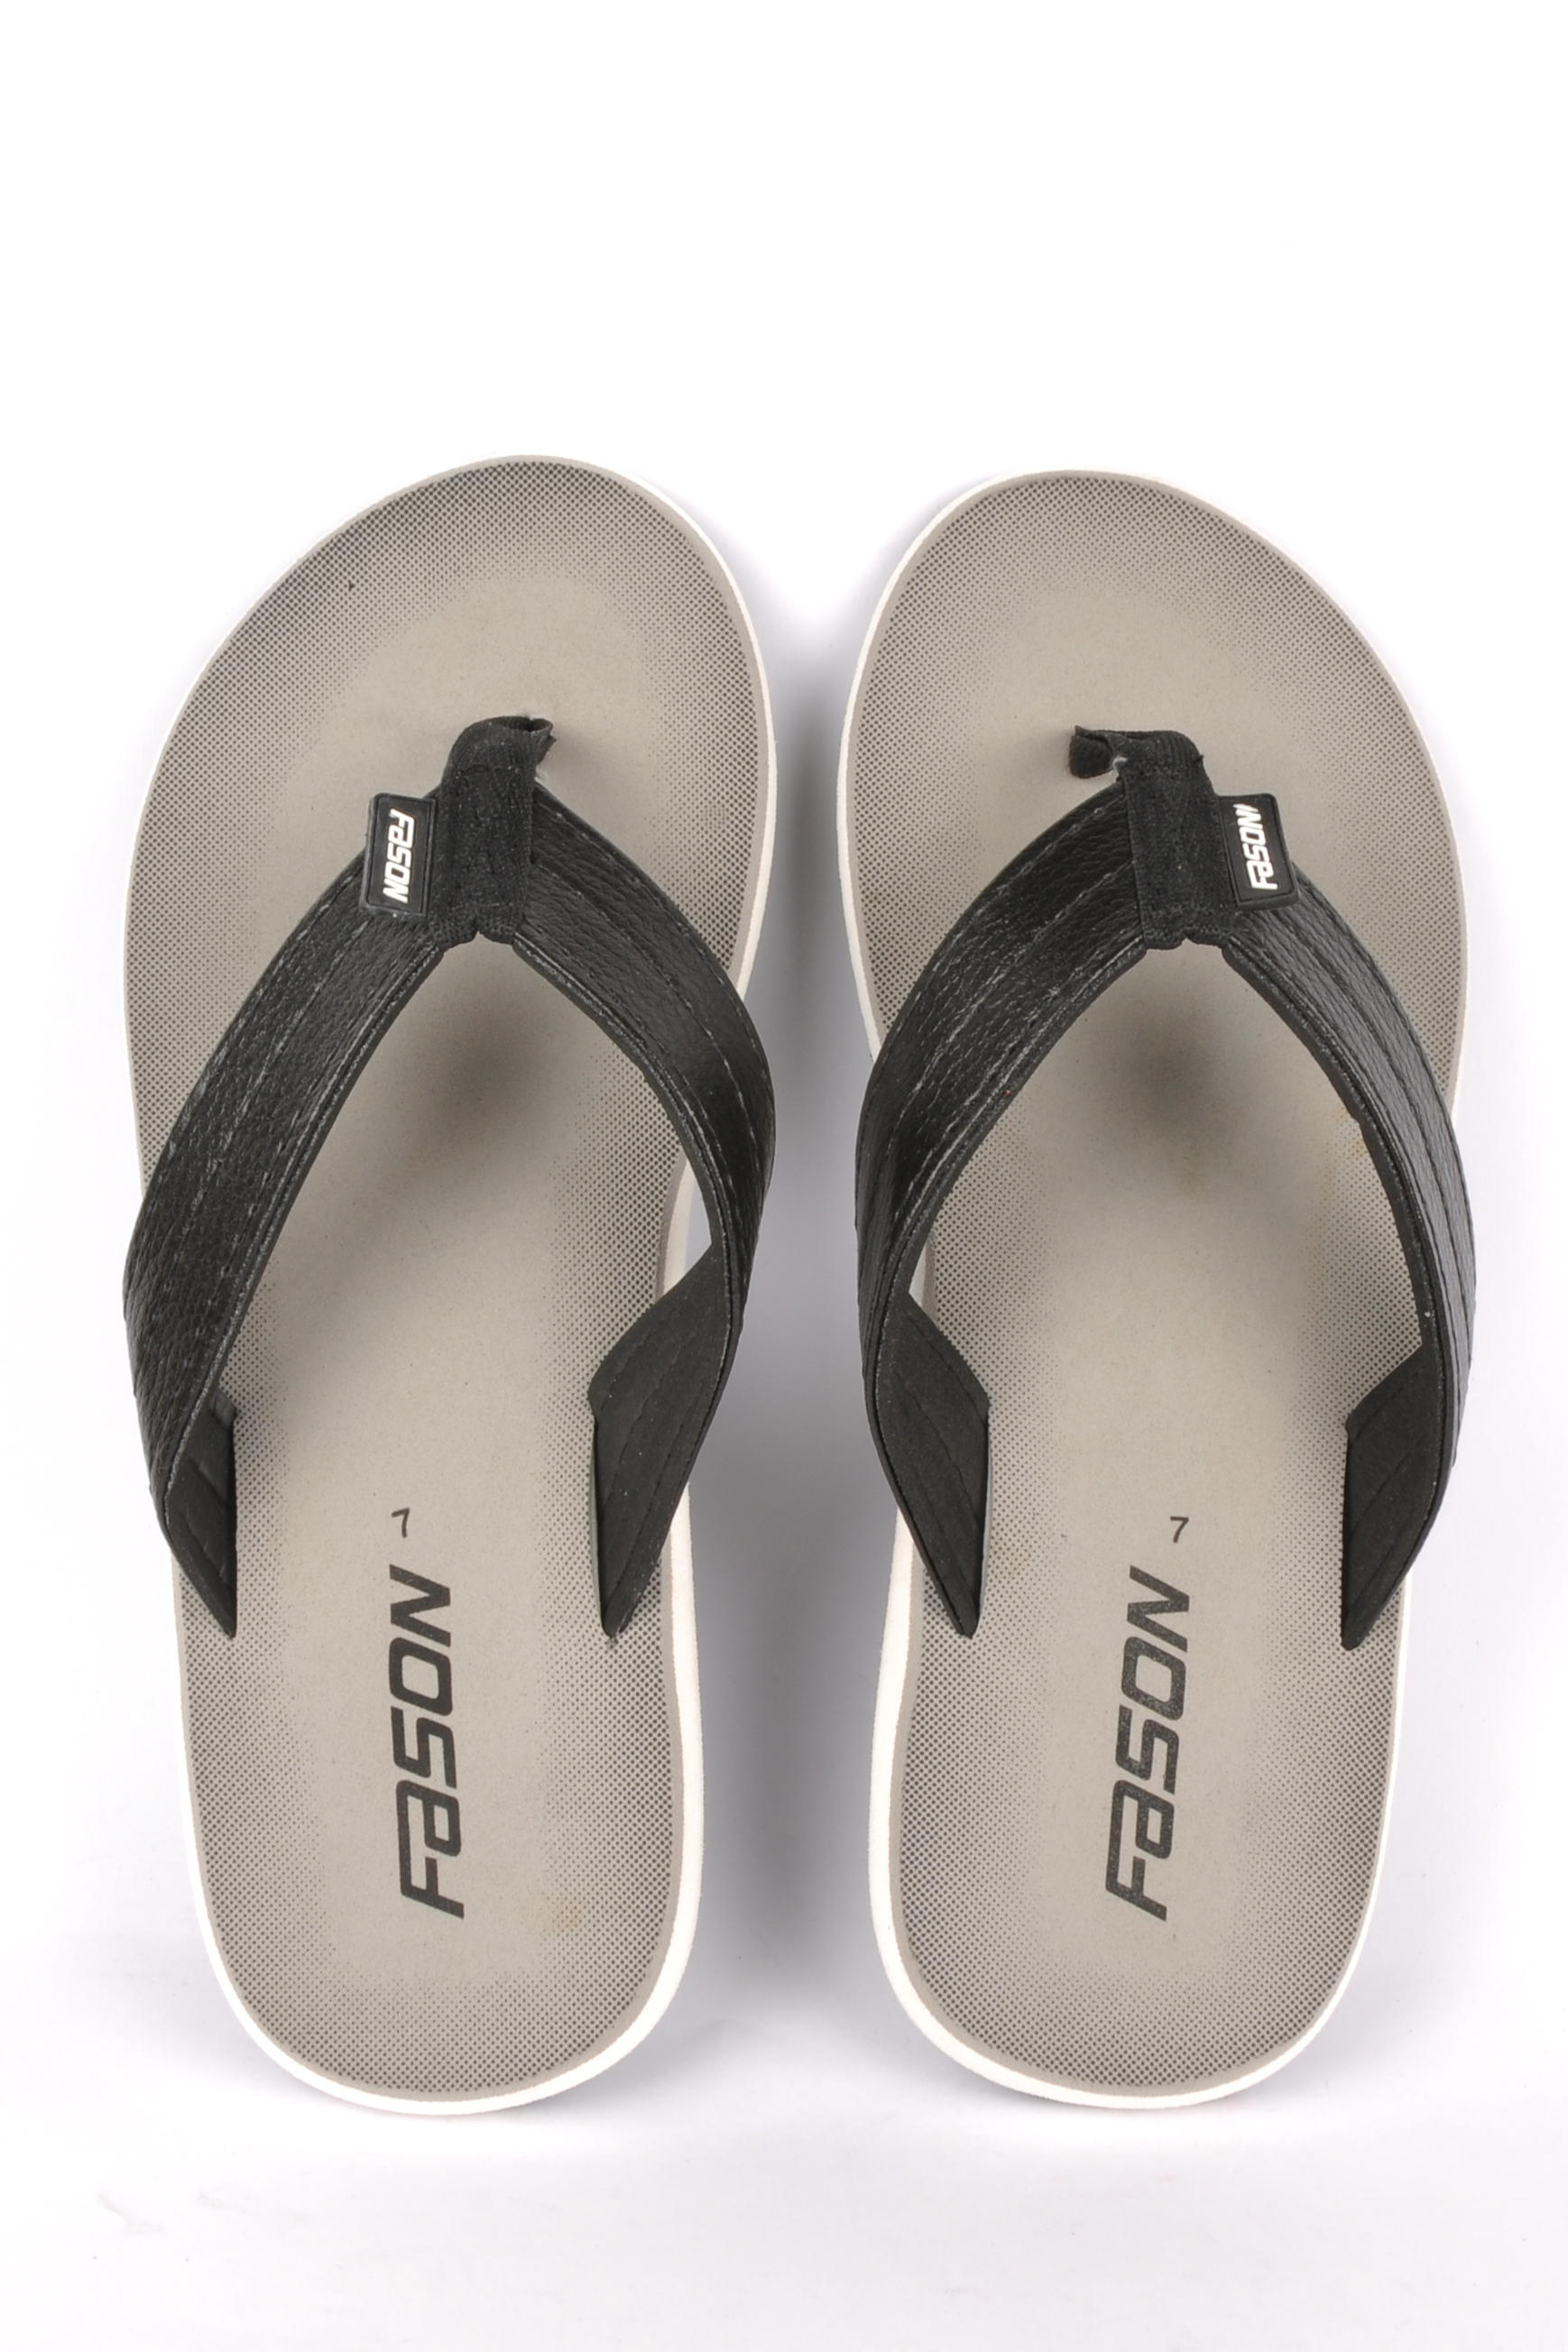 Fashion Flip Flop Slippers